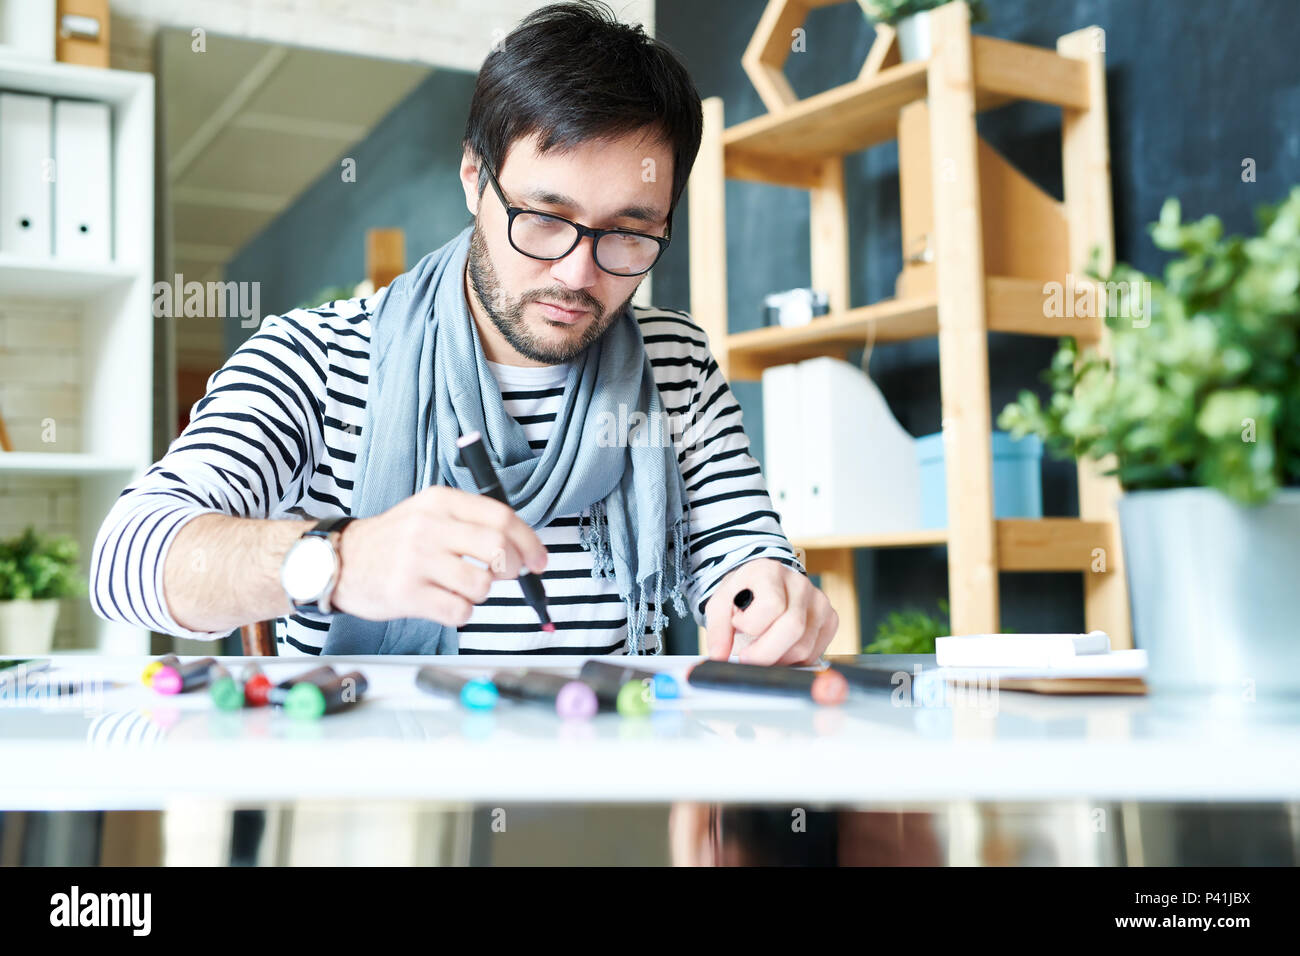 Bearded man working on new painting - Stock Image